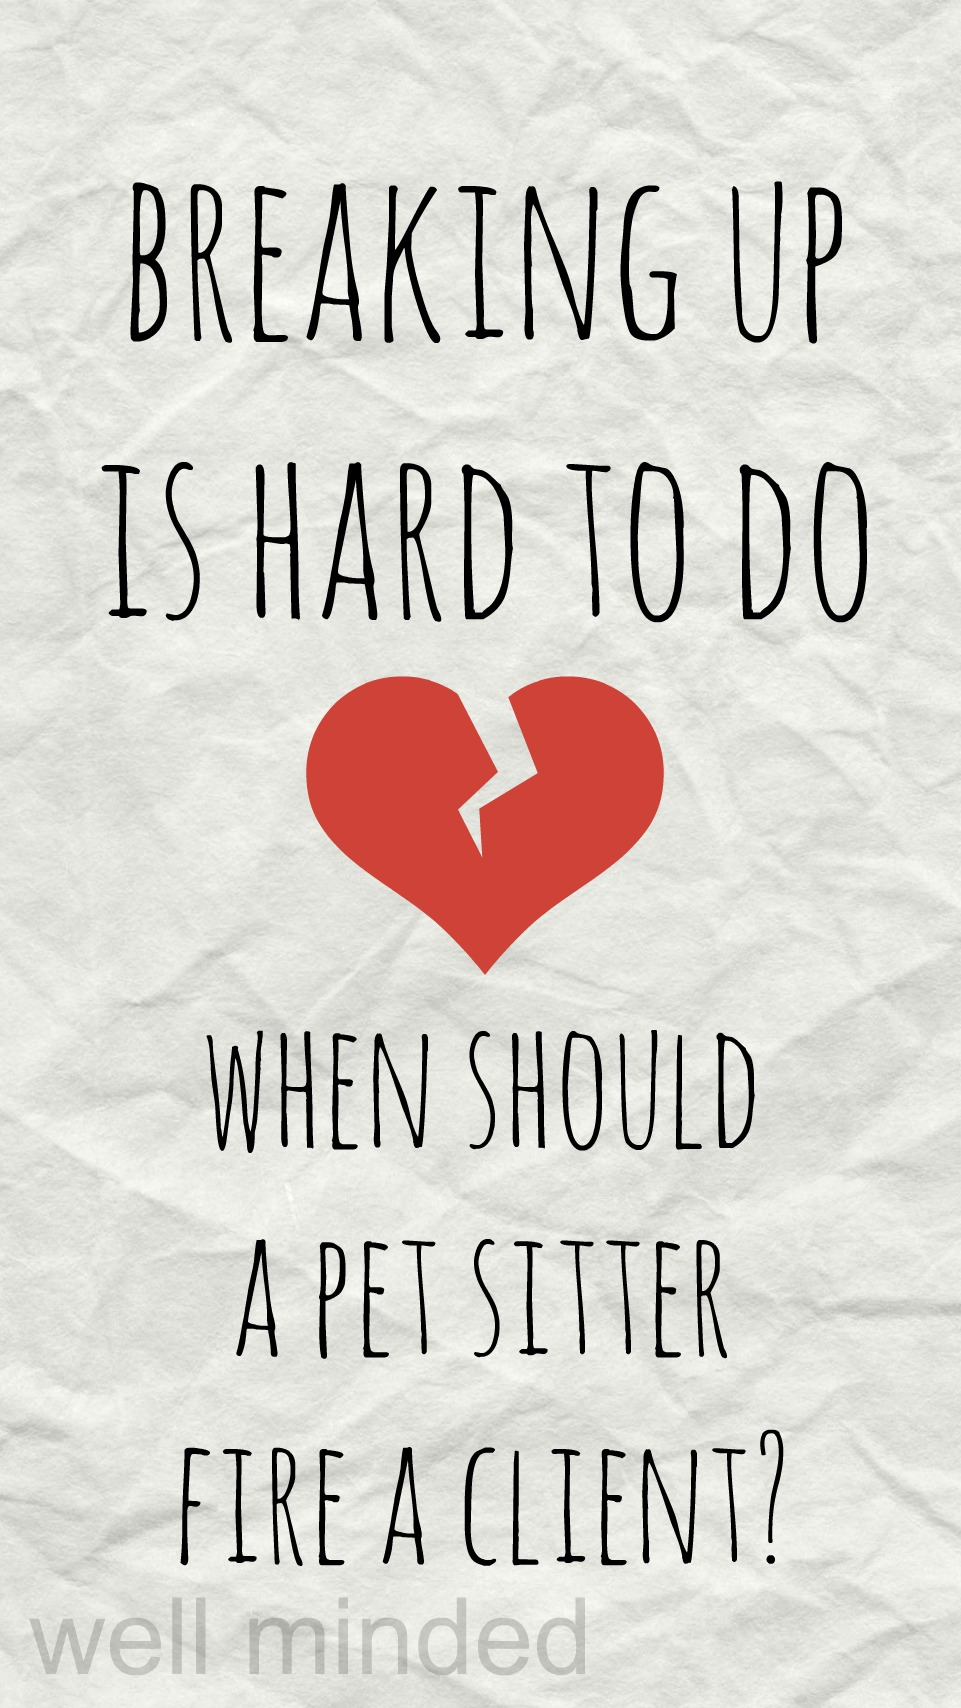 Breaking Up is Hard to Do: When Should a Pet Sitter Fire a Client? wellmindedpets.com